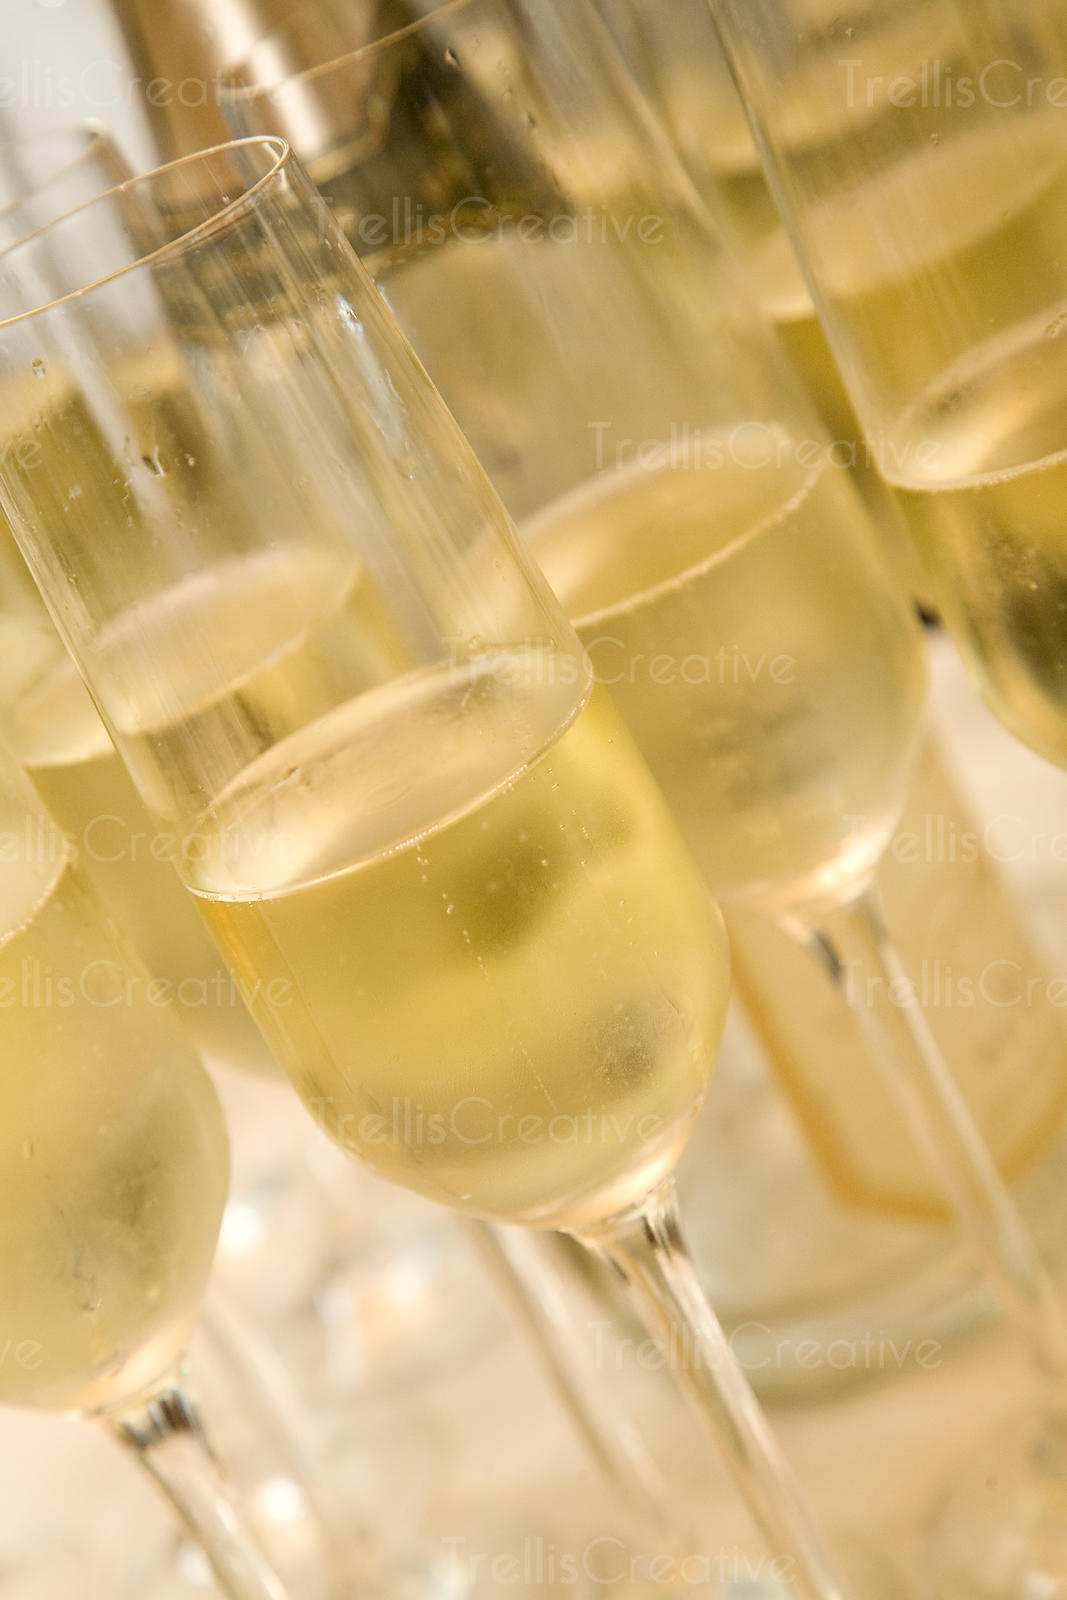 Glasses of chilled sparkling white wine waiting to be served